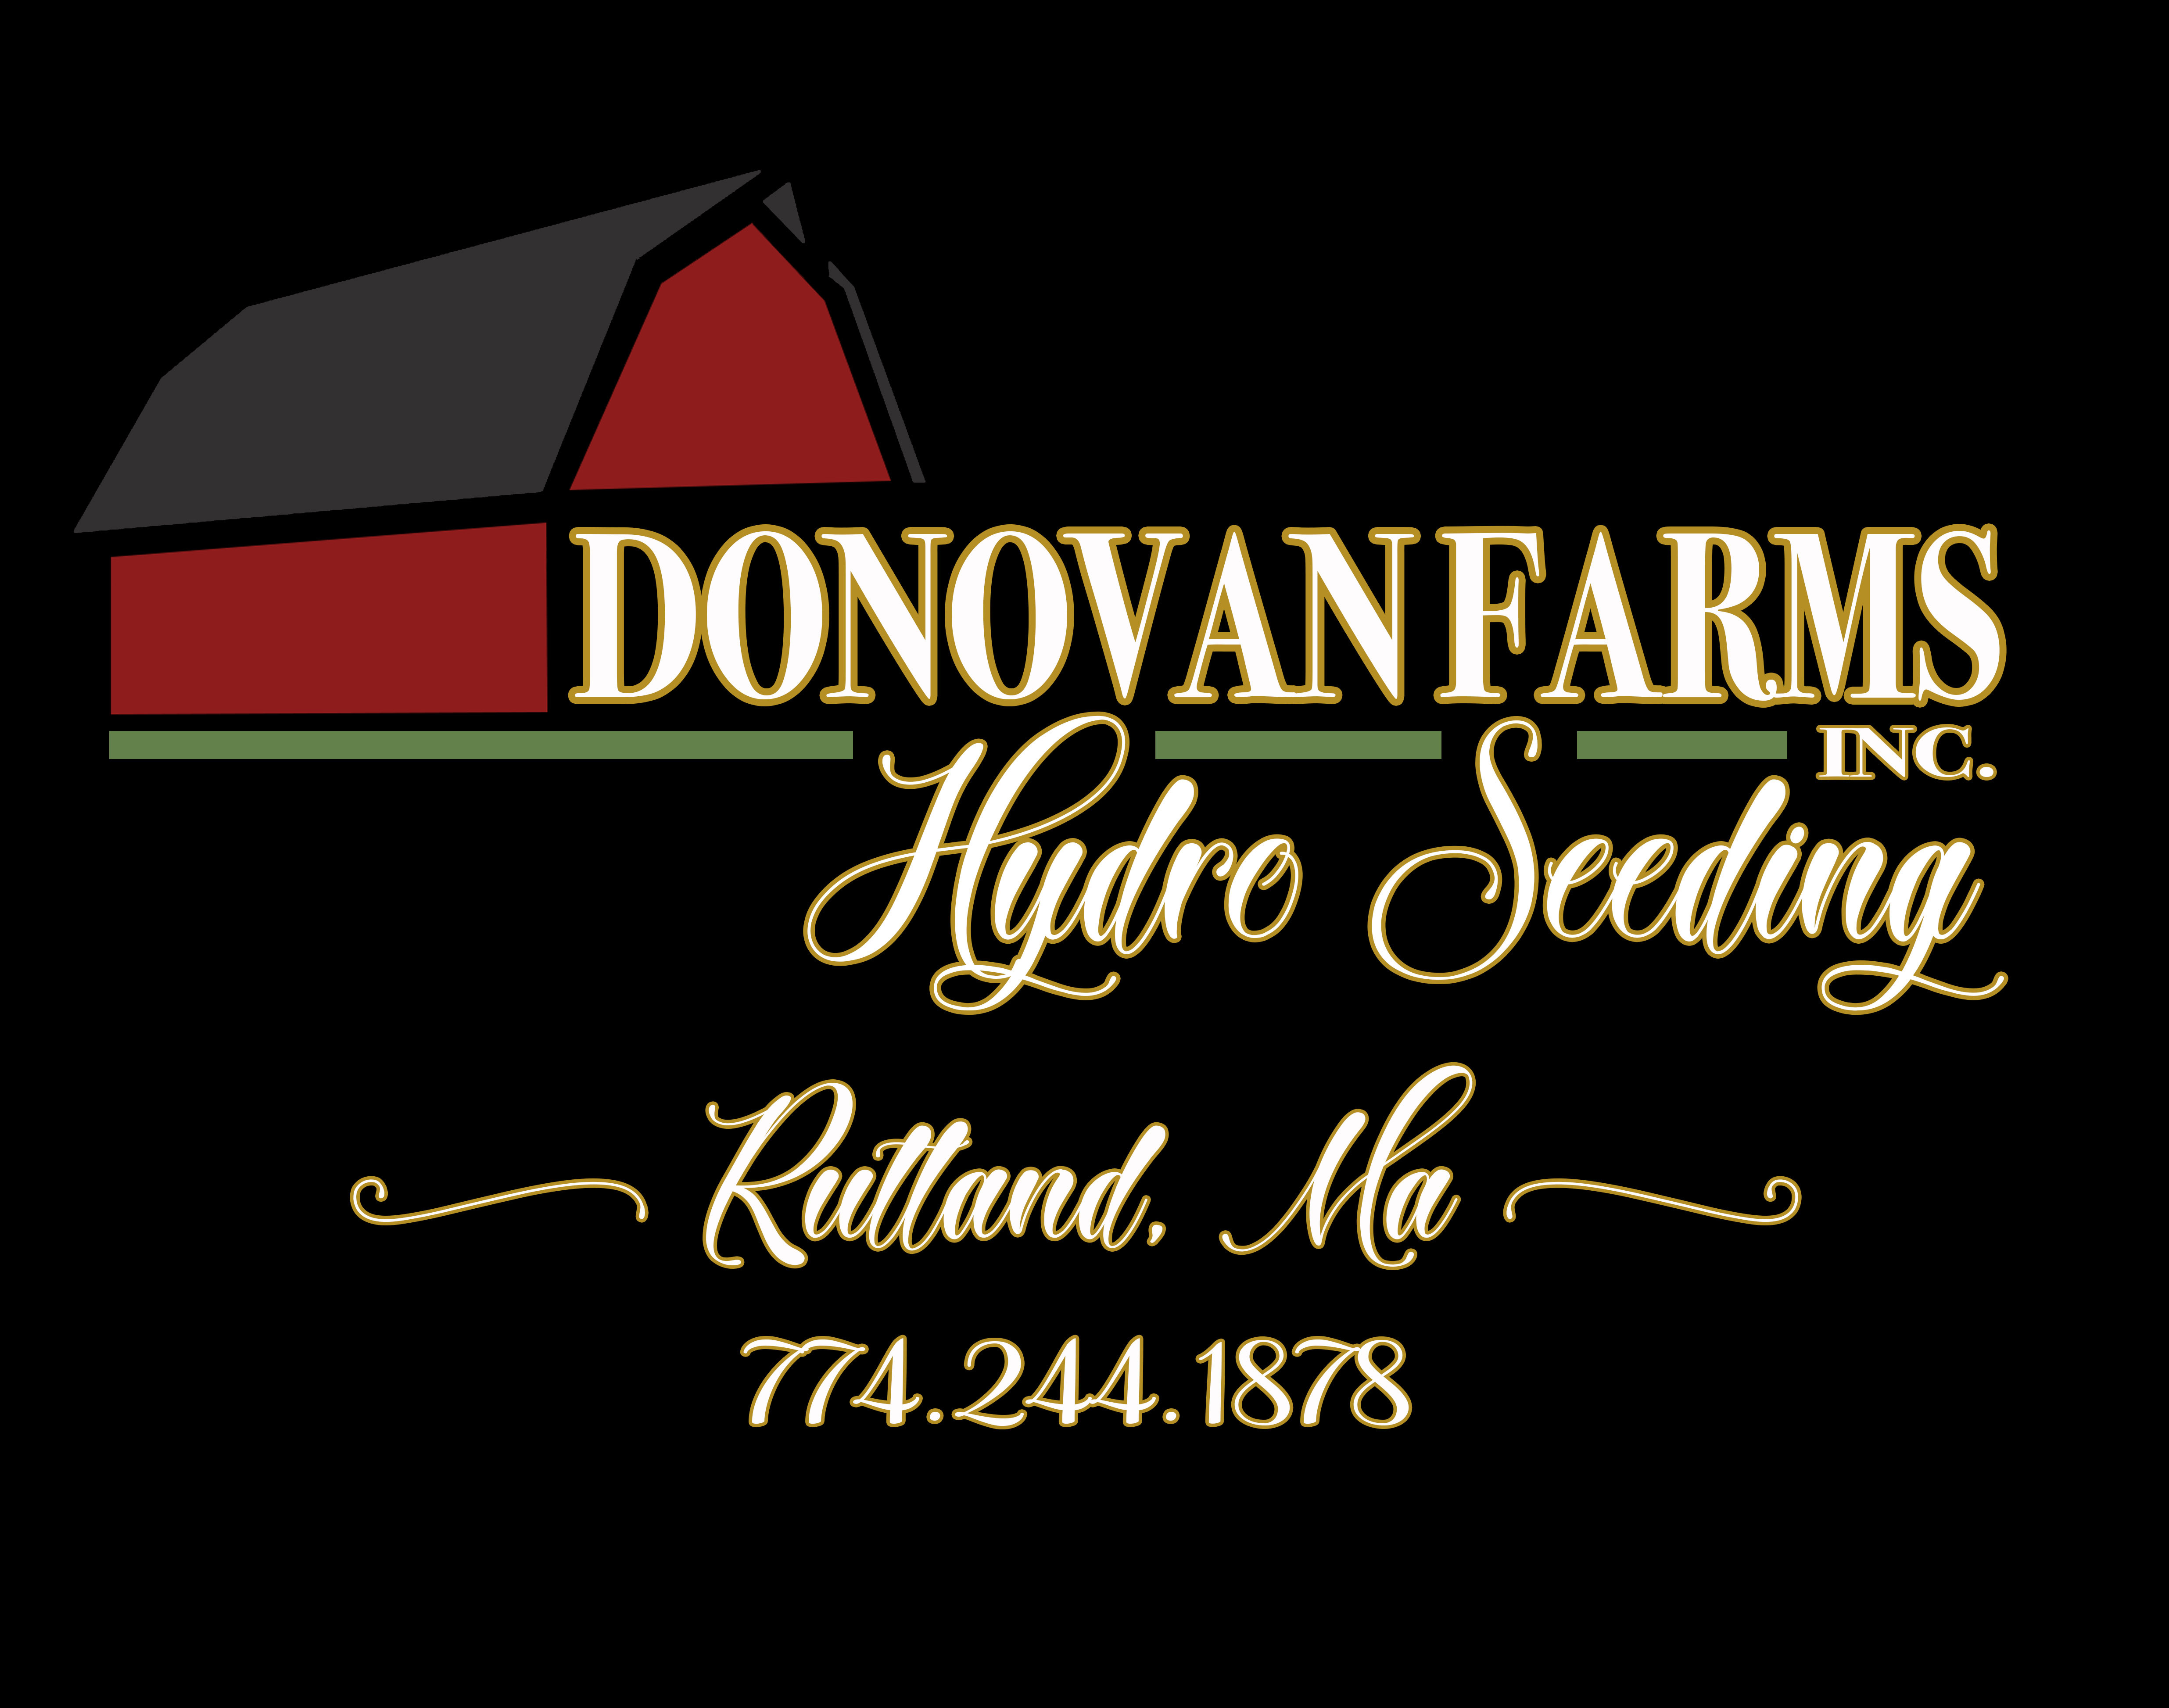 Donovan Farms